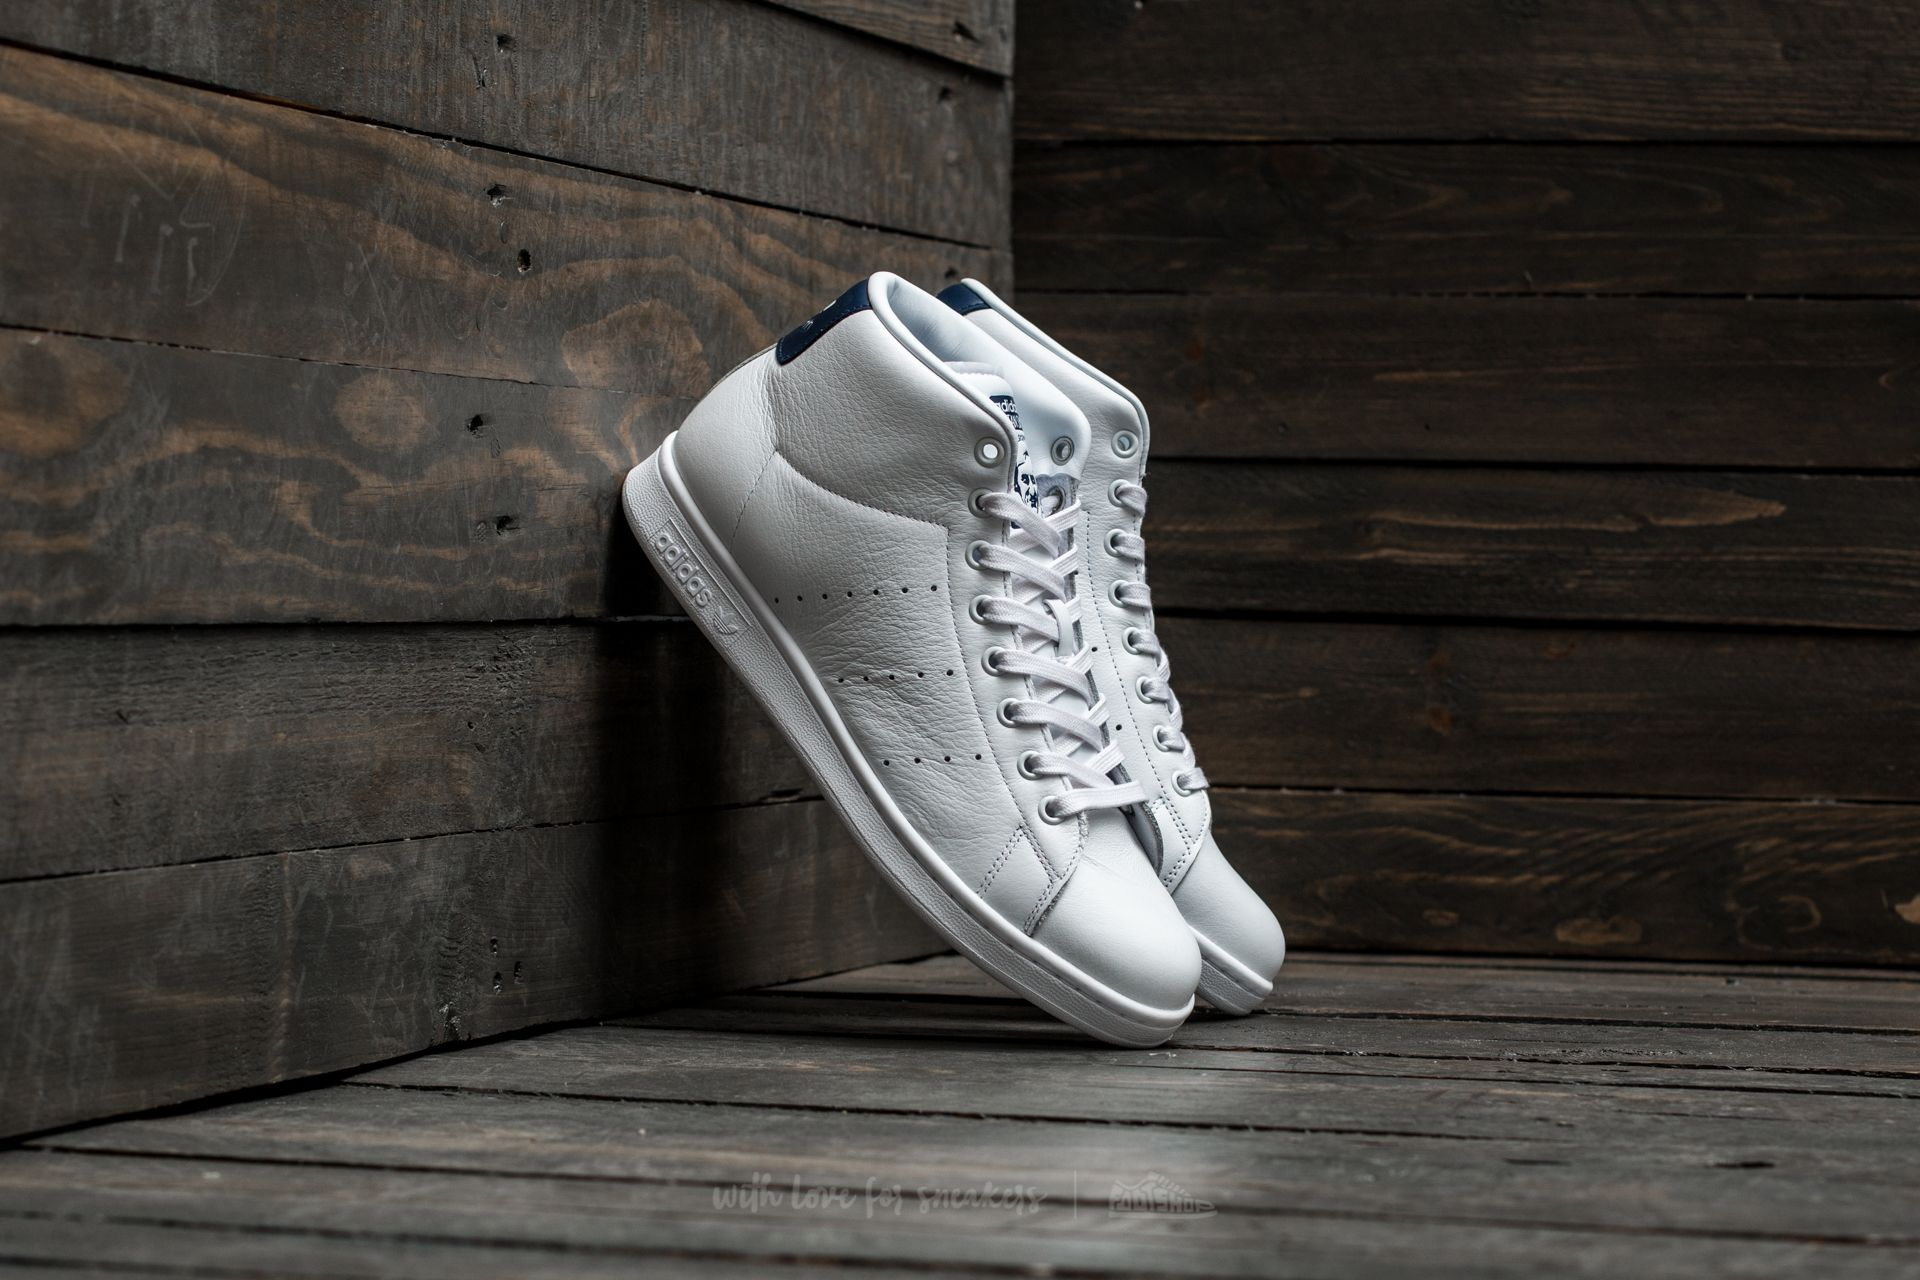 adidas Stan Smith Mid Ftw White/ Ftw White/ Dark Blue